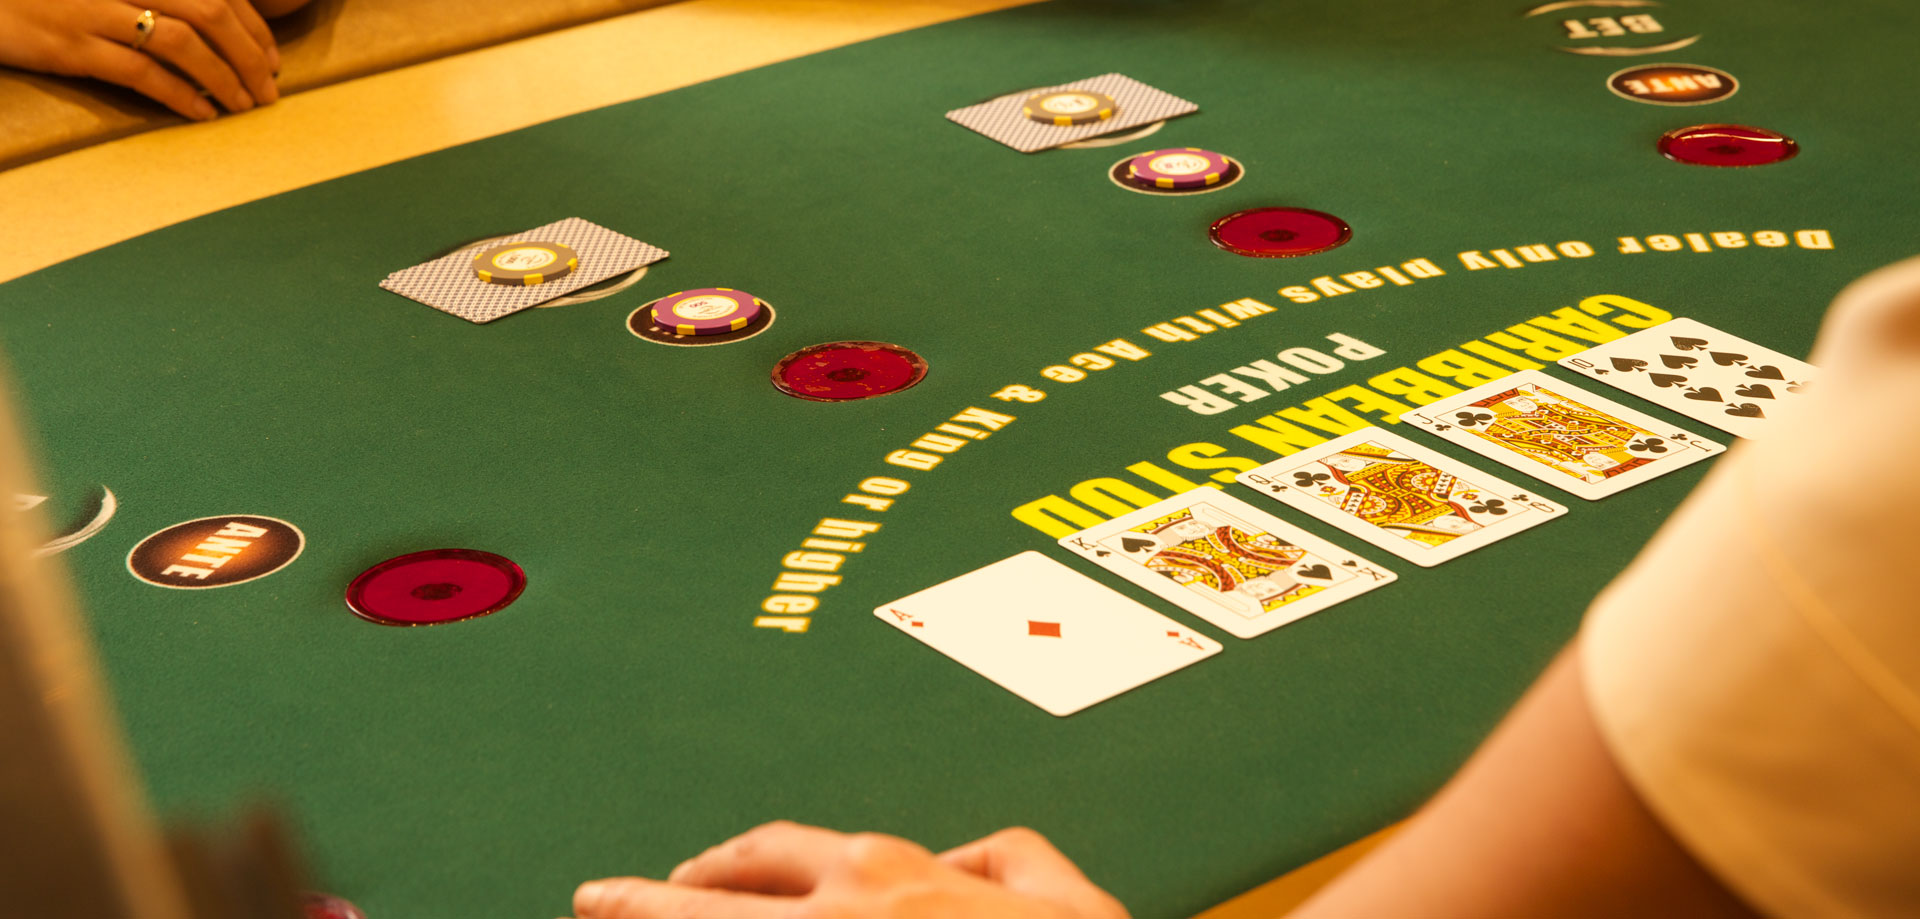 Casino holdem how to play